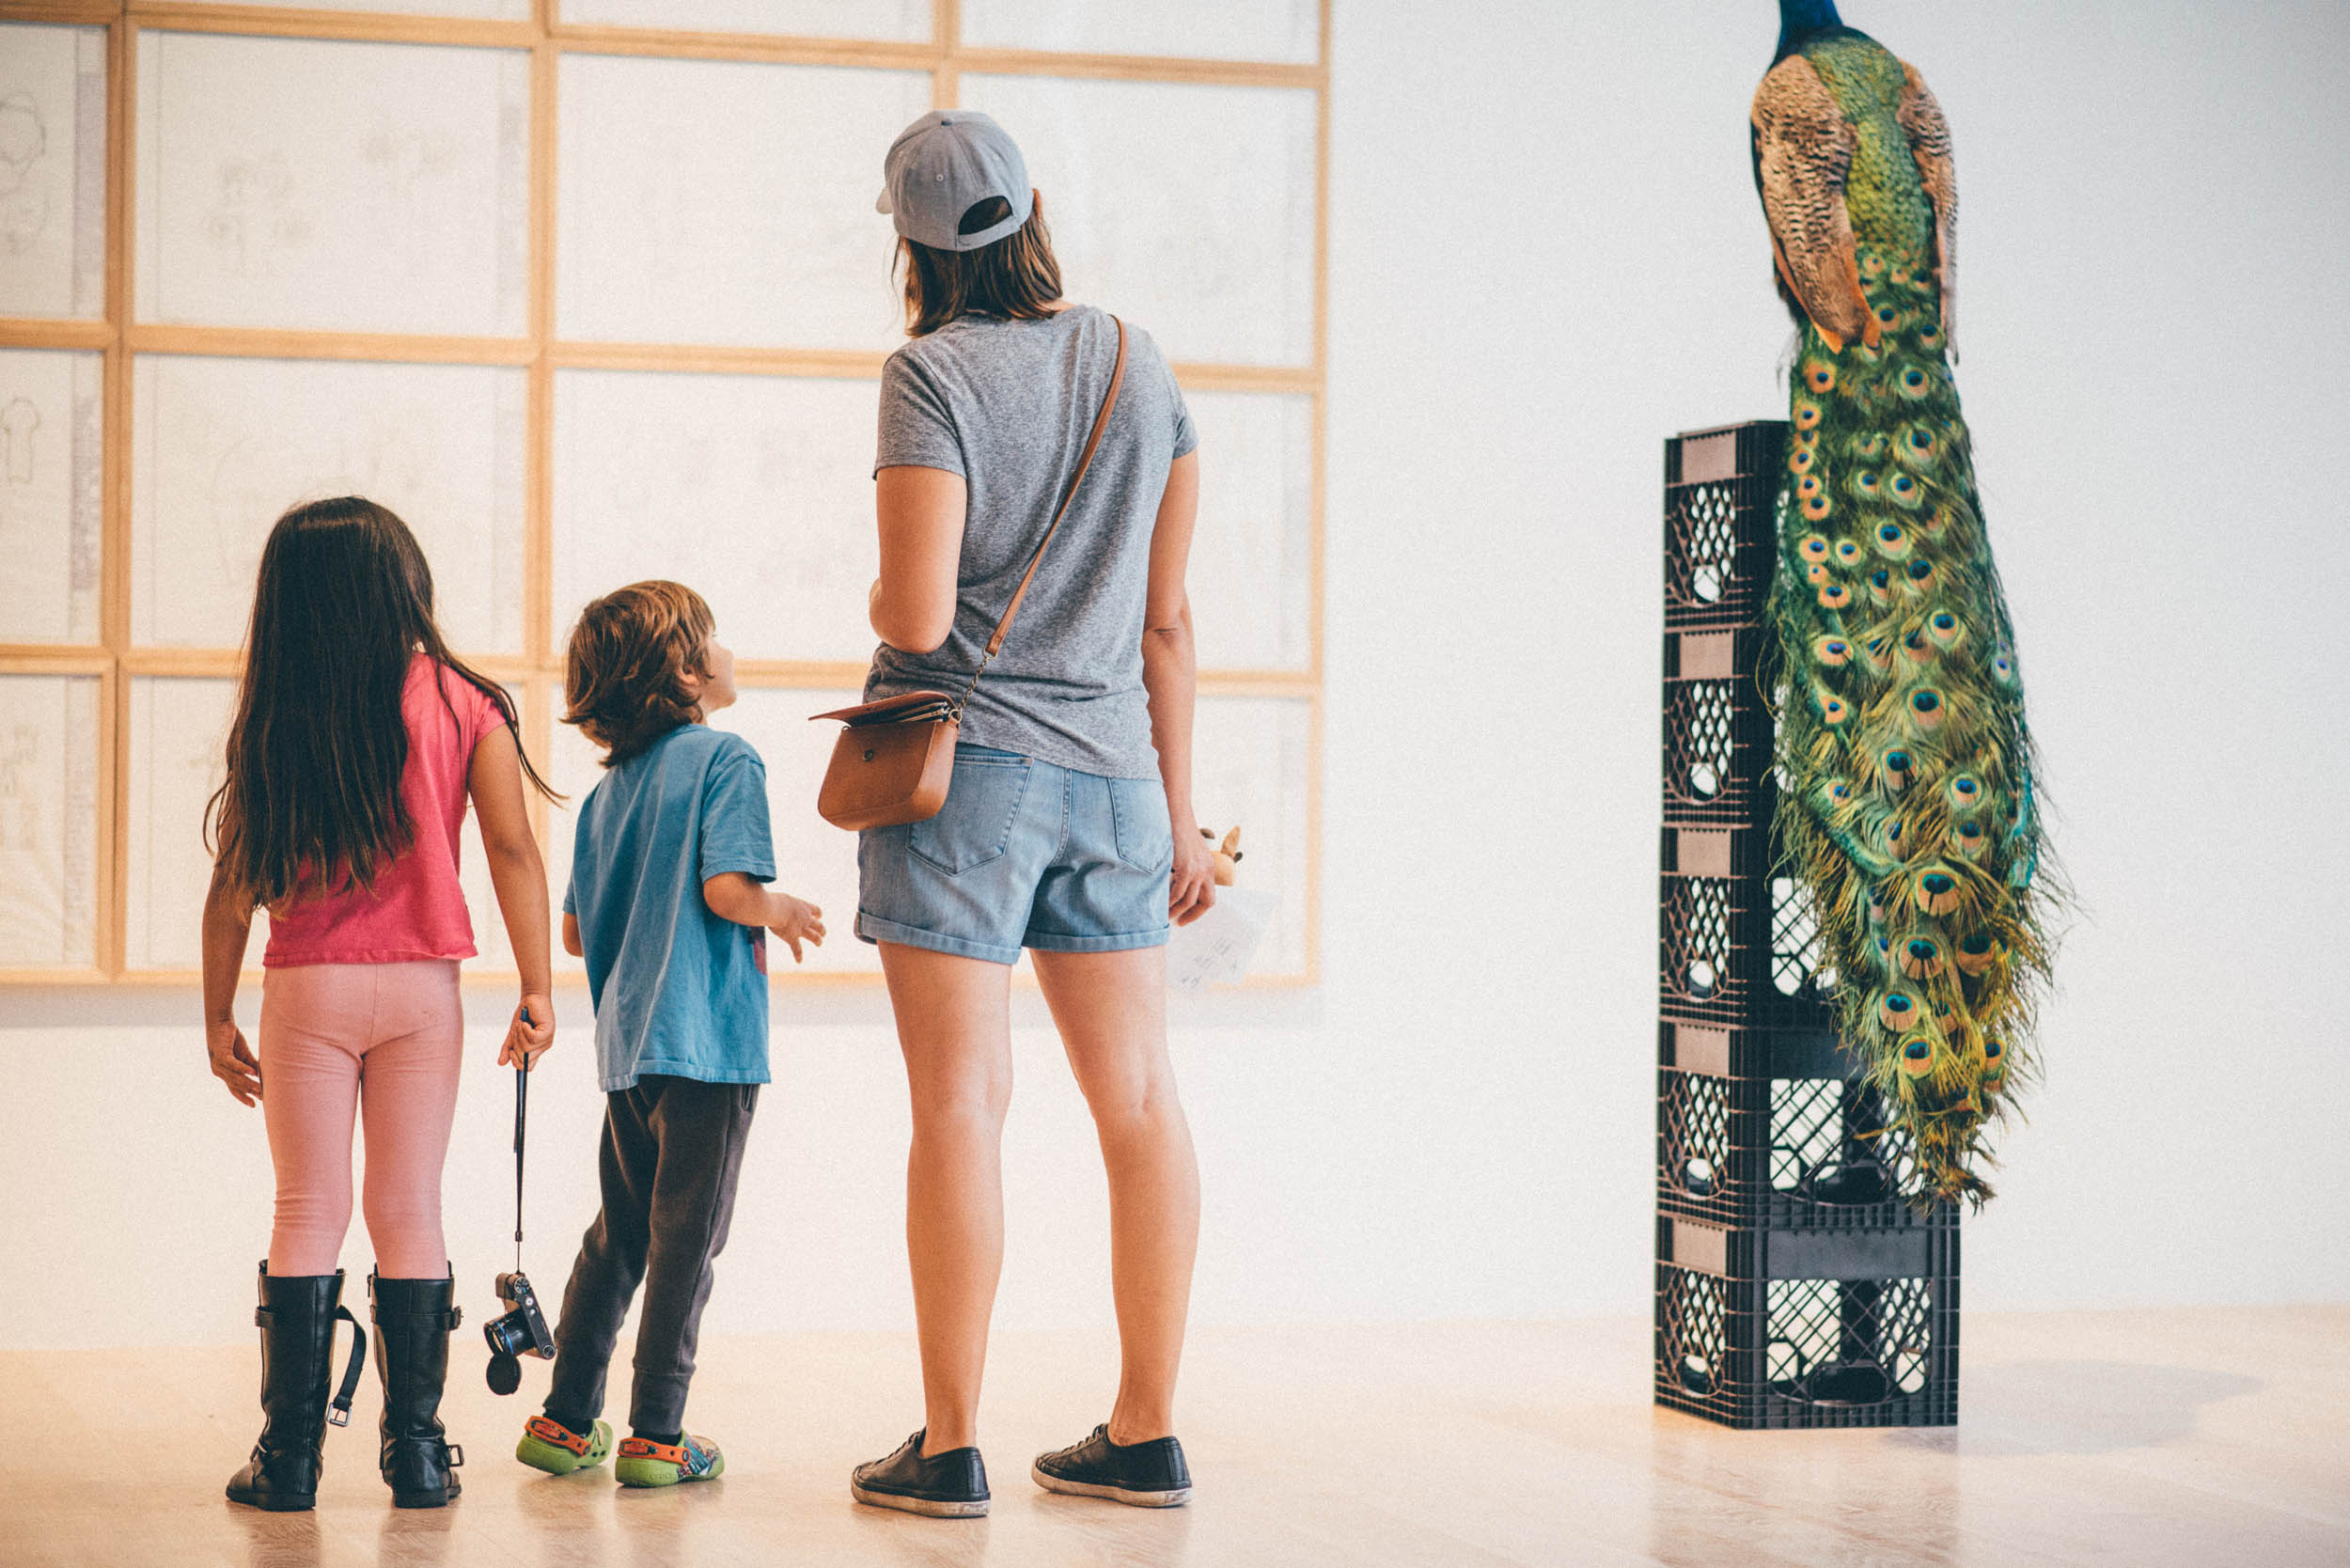 Family Day in the Miami Design District at ICA Miami. Photo: Javier Sanchez.